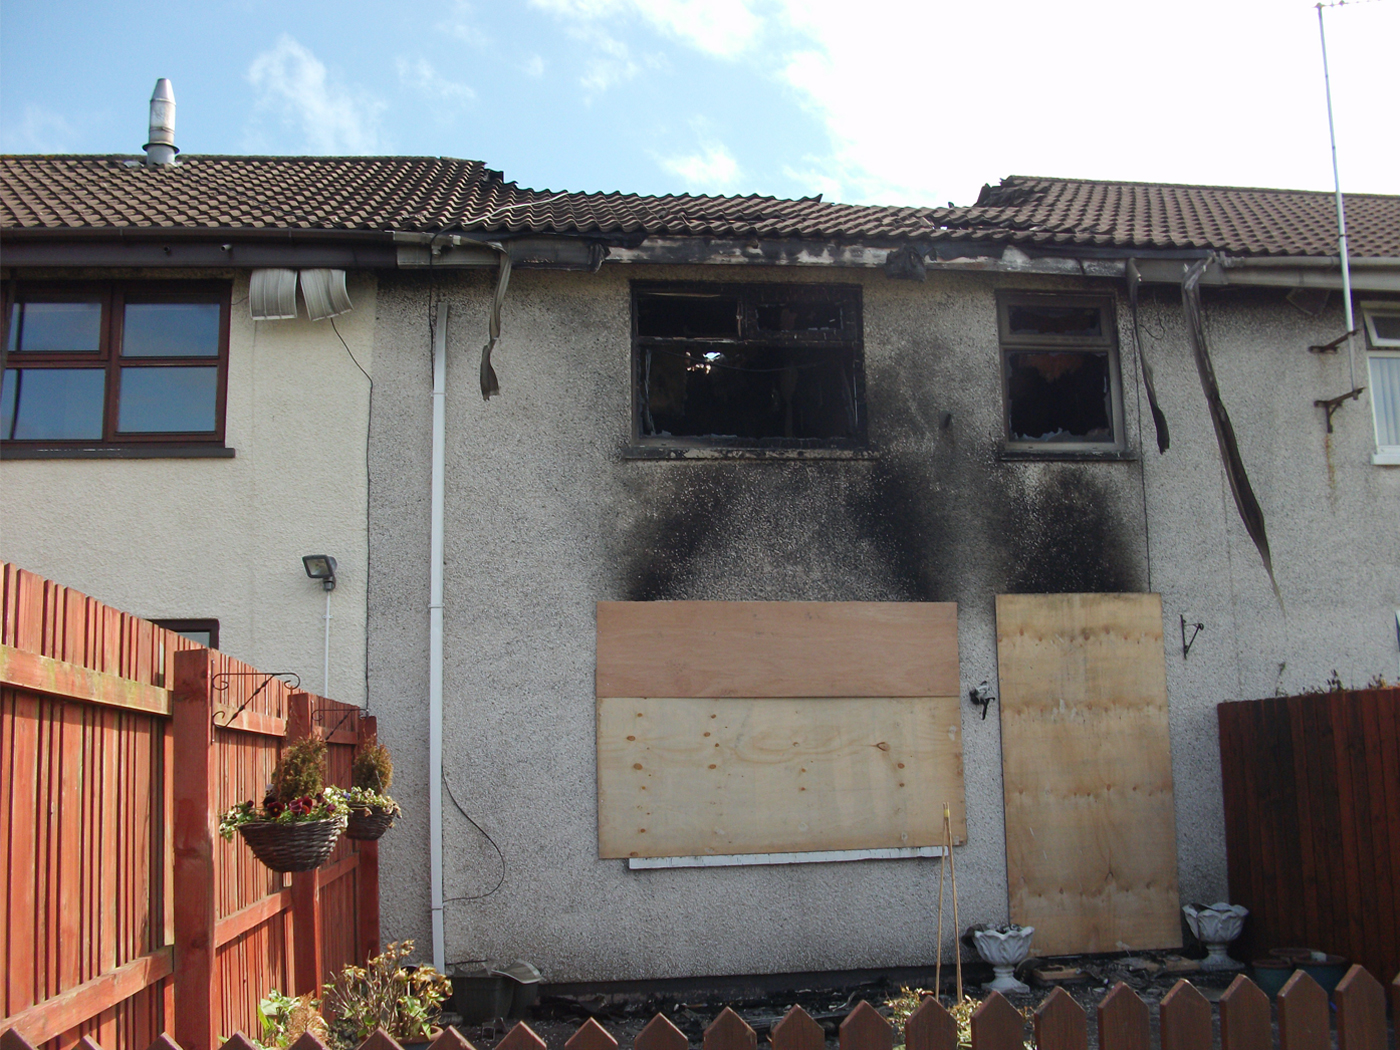 House fire before image - with fire damage